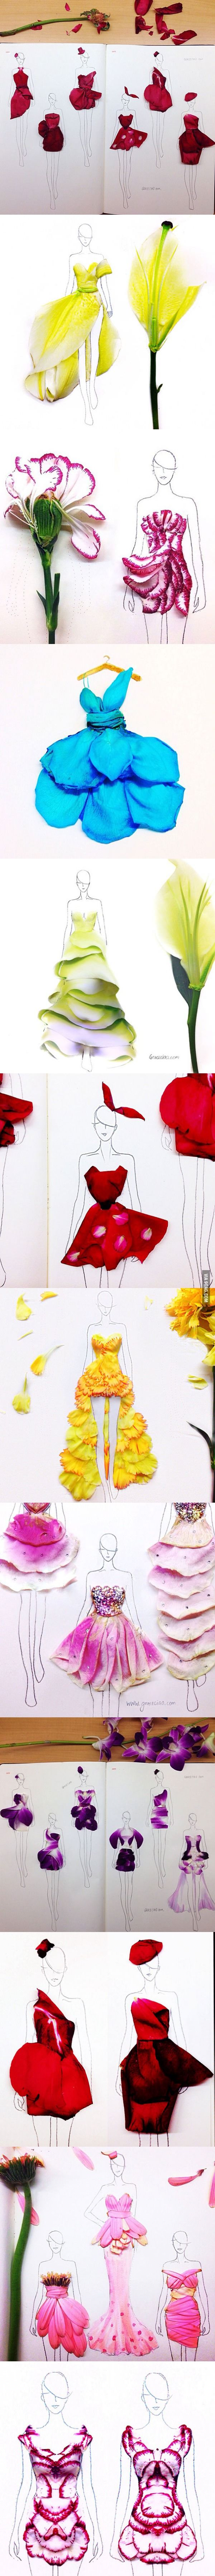 Clever Fashion Illustrations With Real Flower Petals As Clothing.